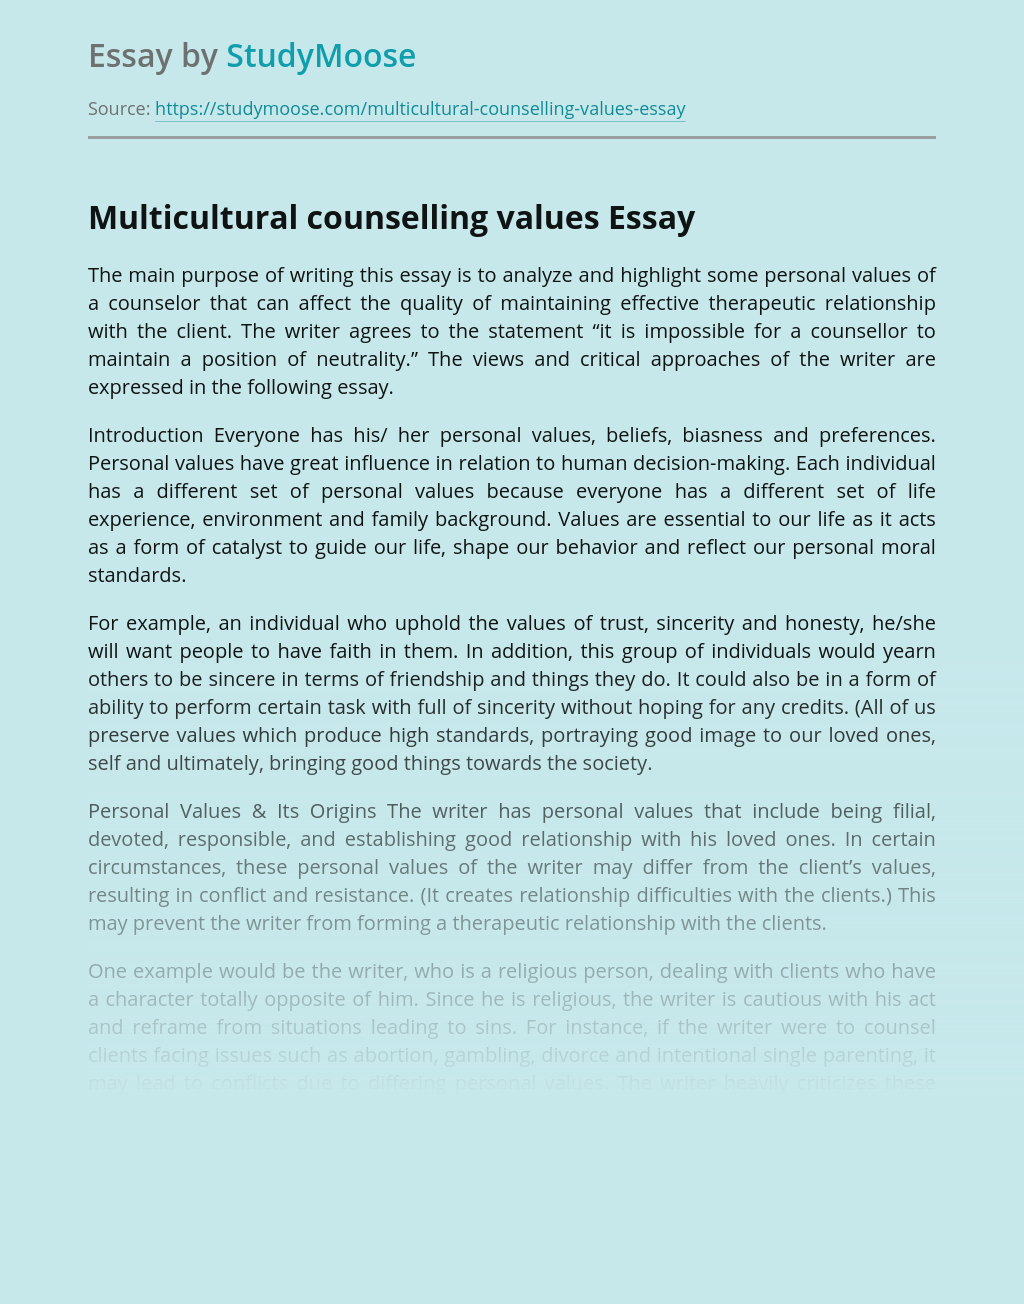 Multicultural counselling values